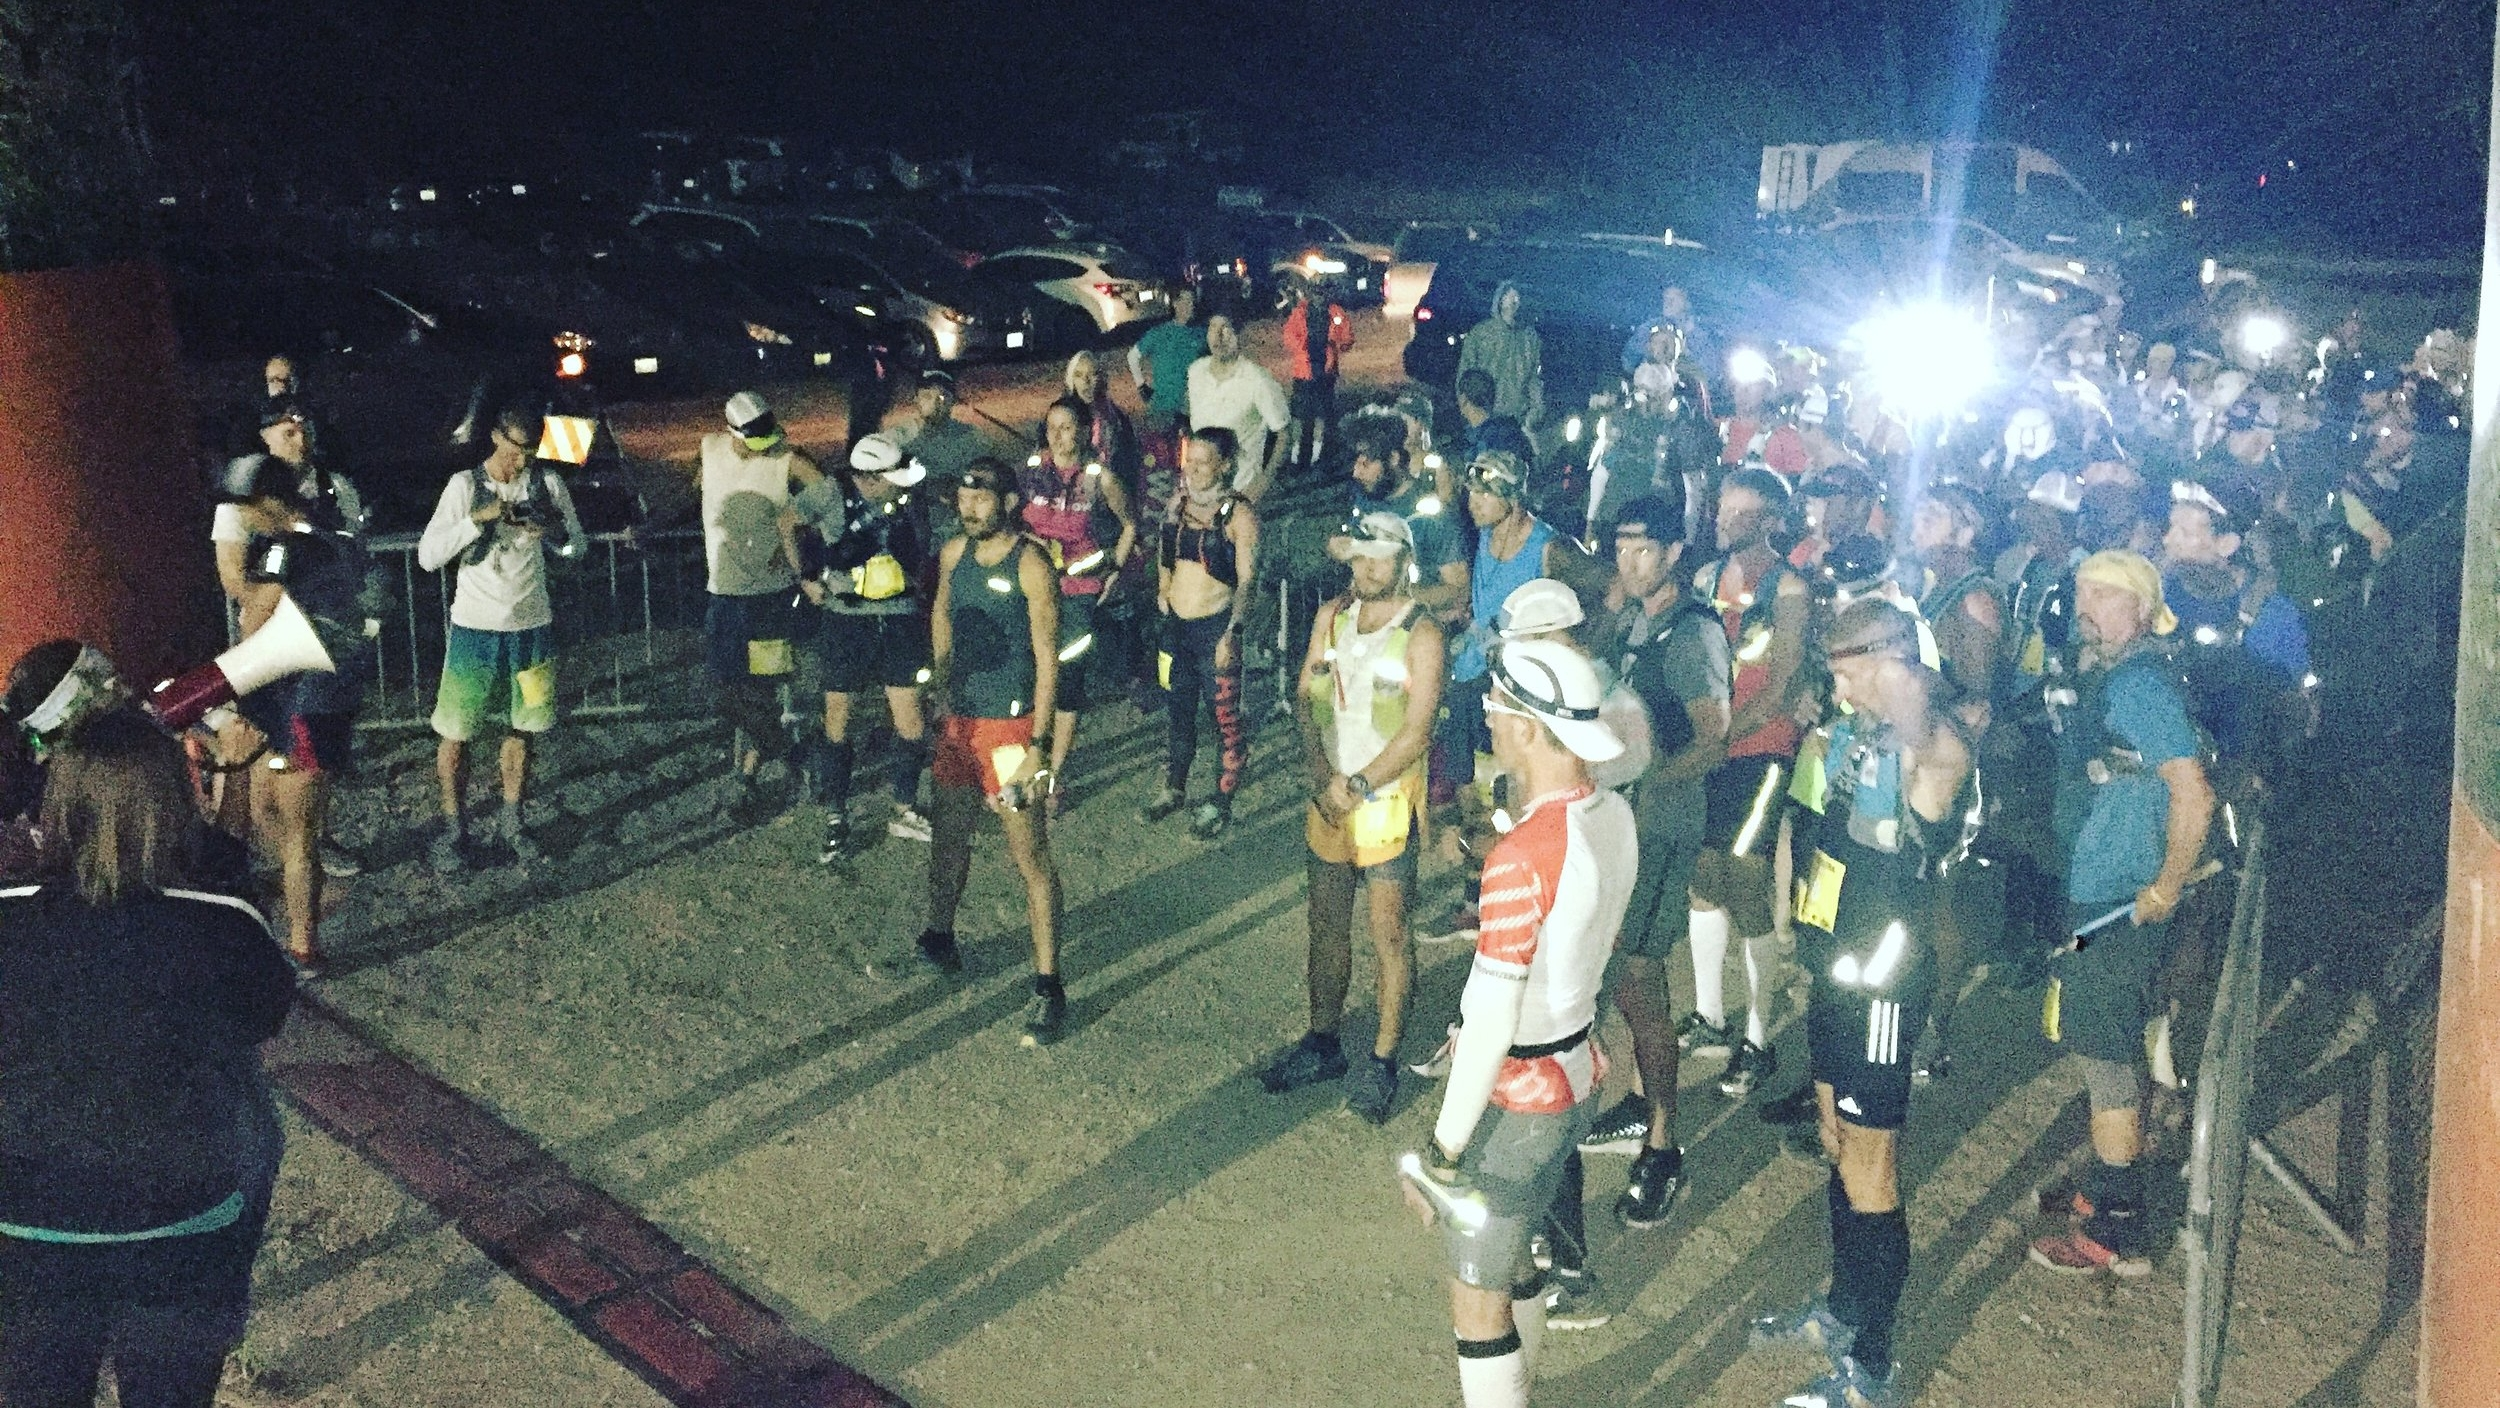 50 Mile Ultra participants toe the line at the start of their race; the first of the day.